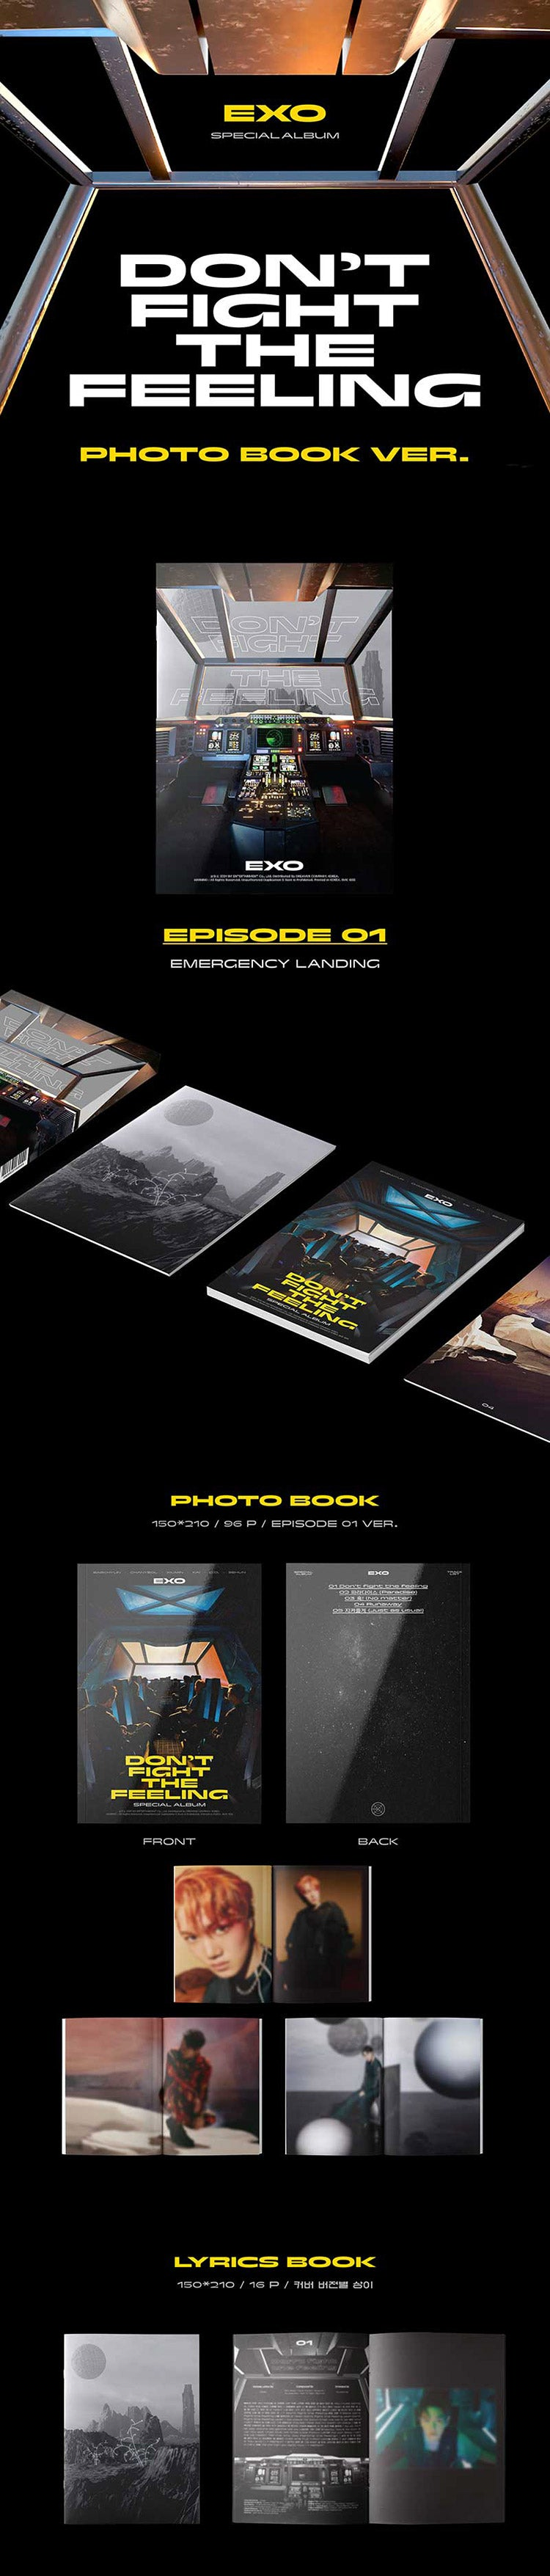 EXO - Special Album [Don't Fight The Feeling] Photo Book Ver.1